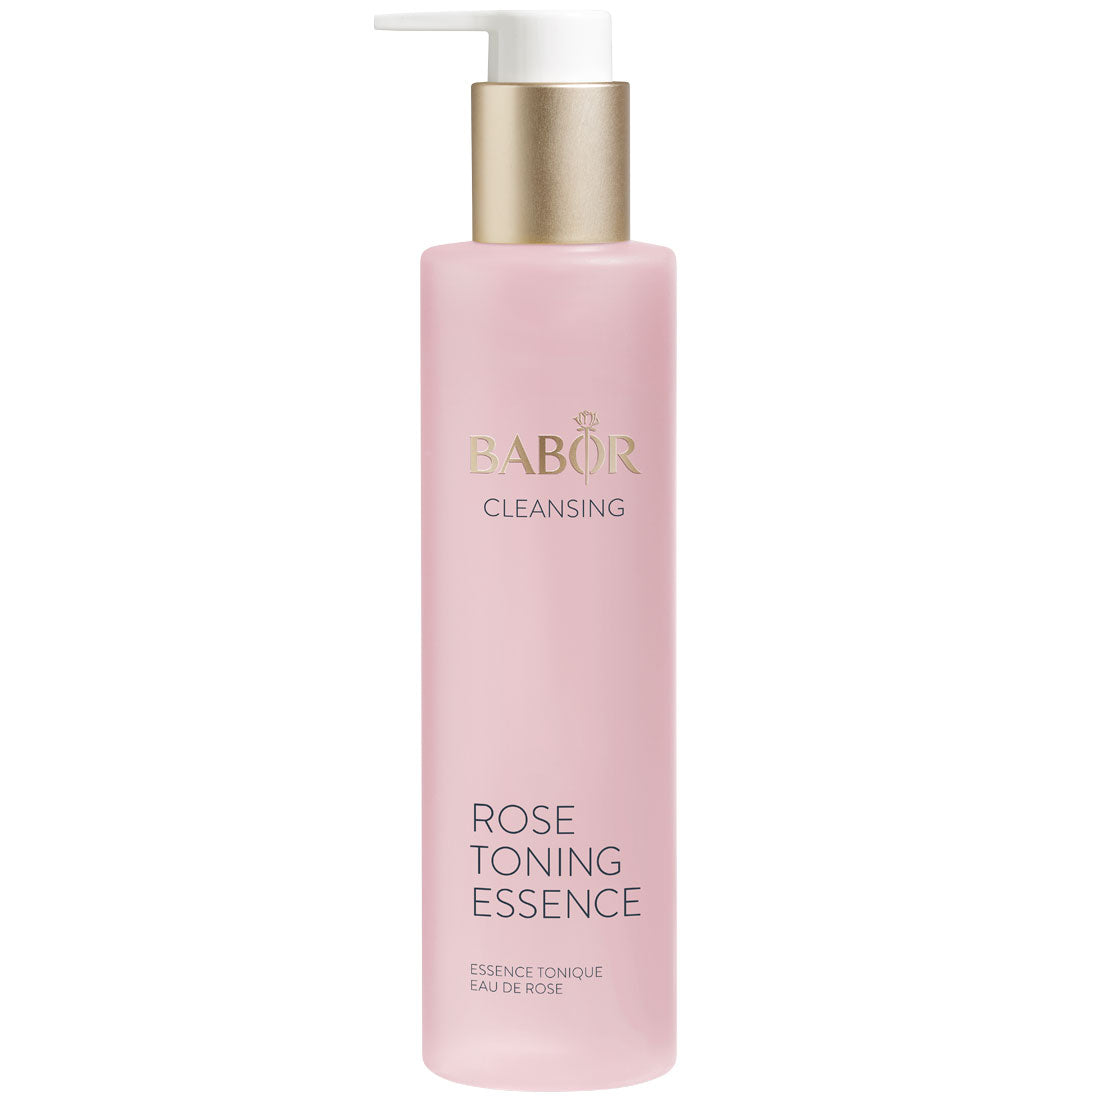 Babor Rose Toning Essence